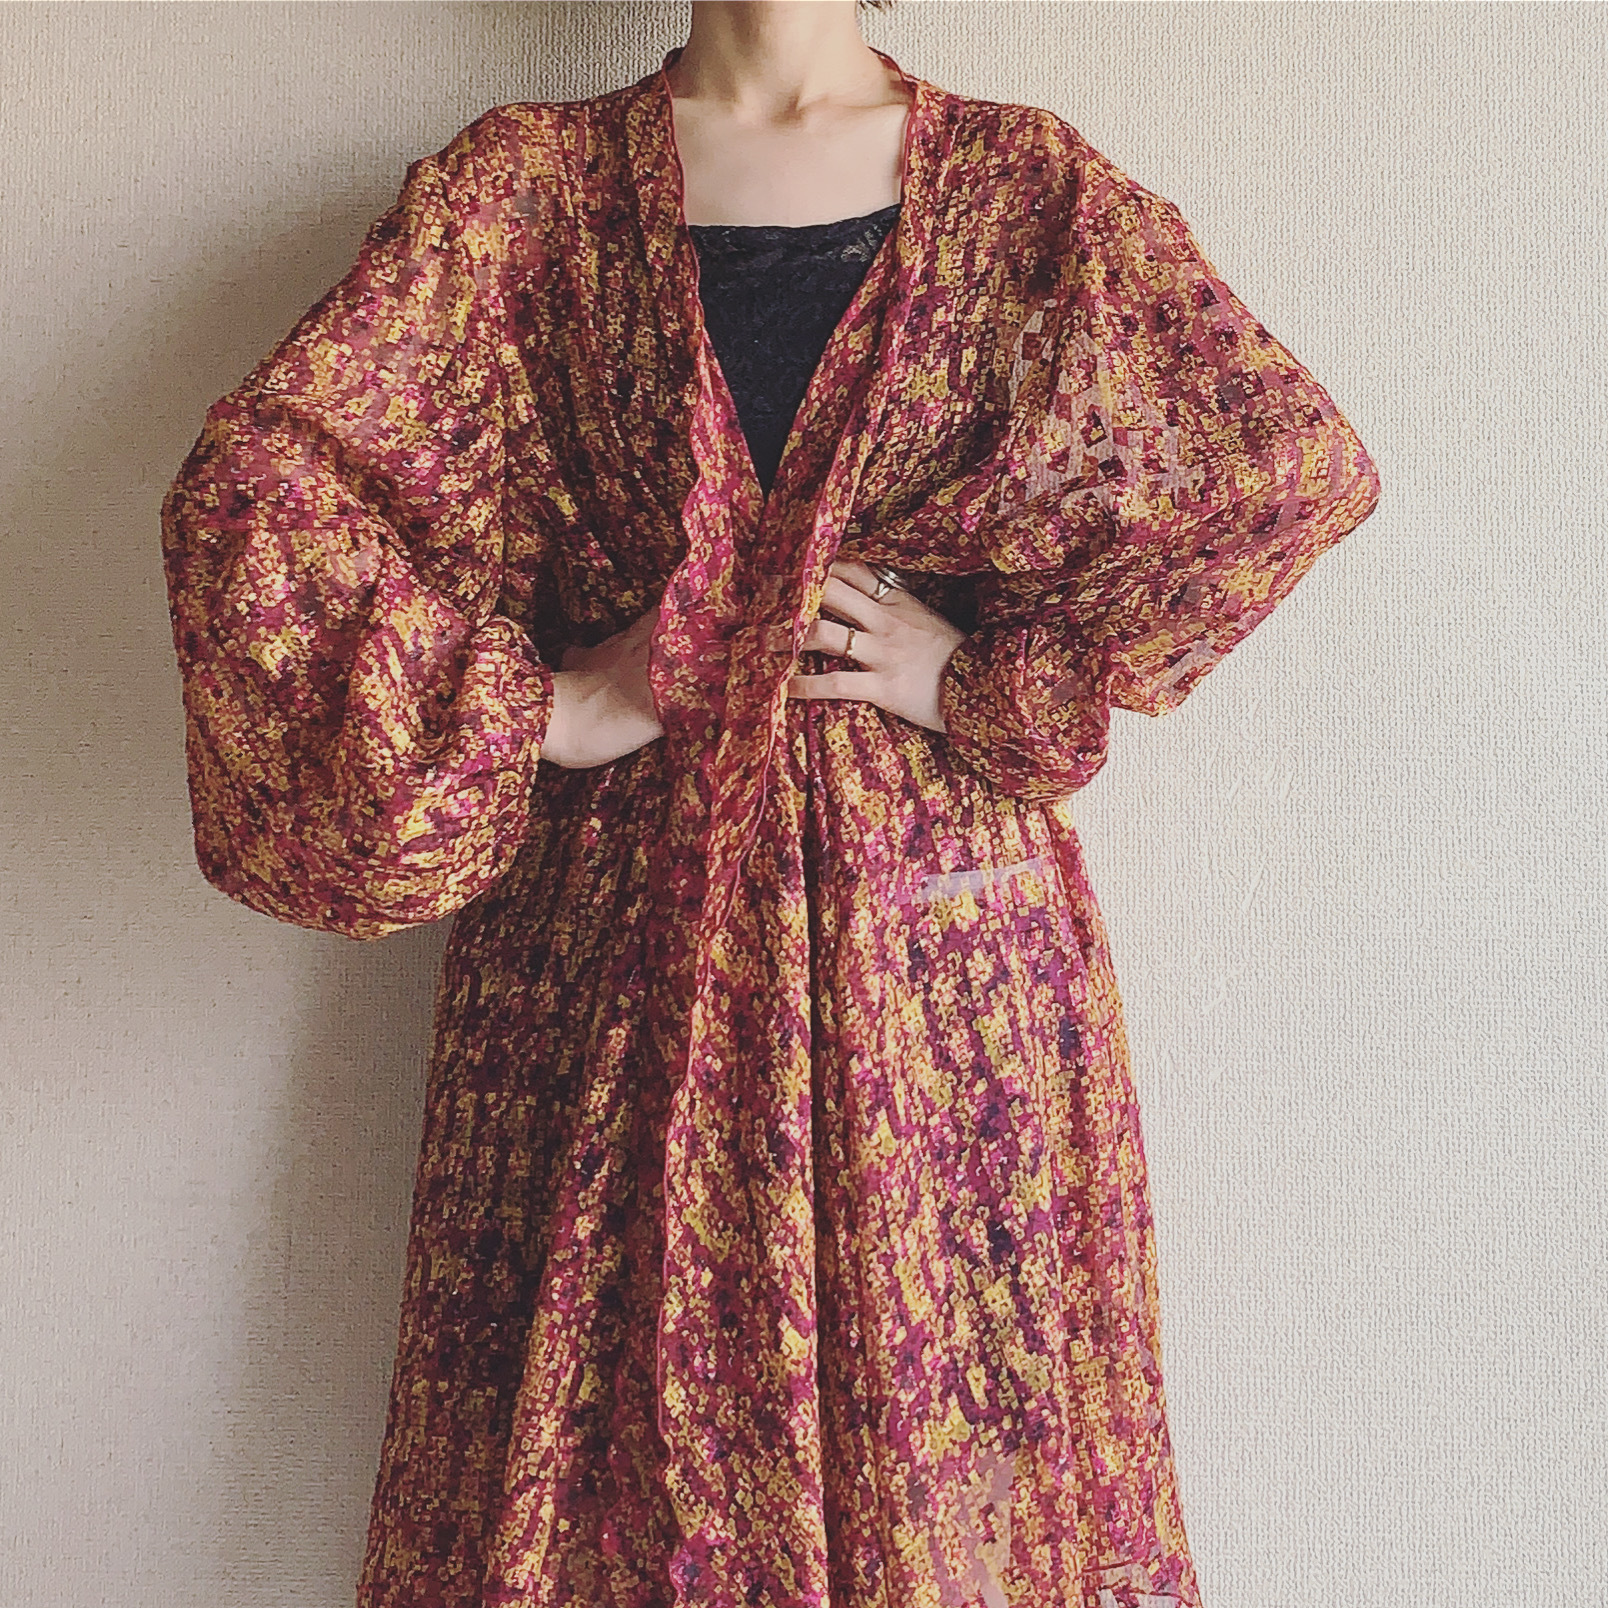 vintage oversized see-through haori